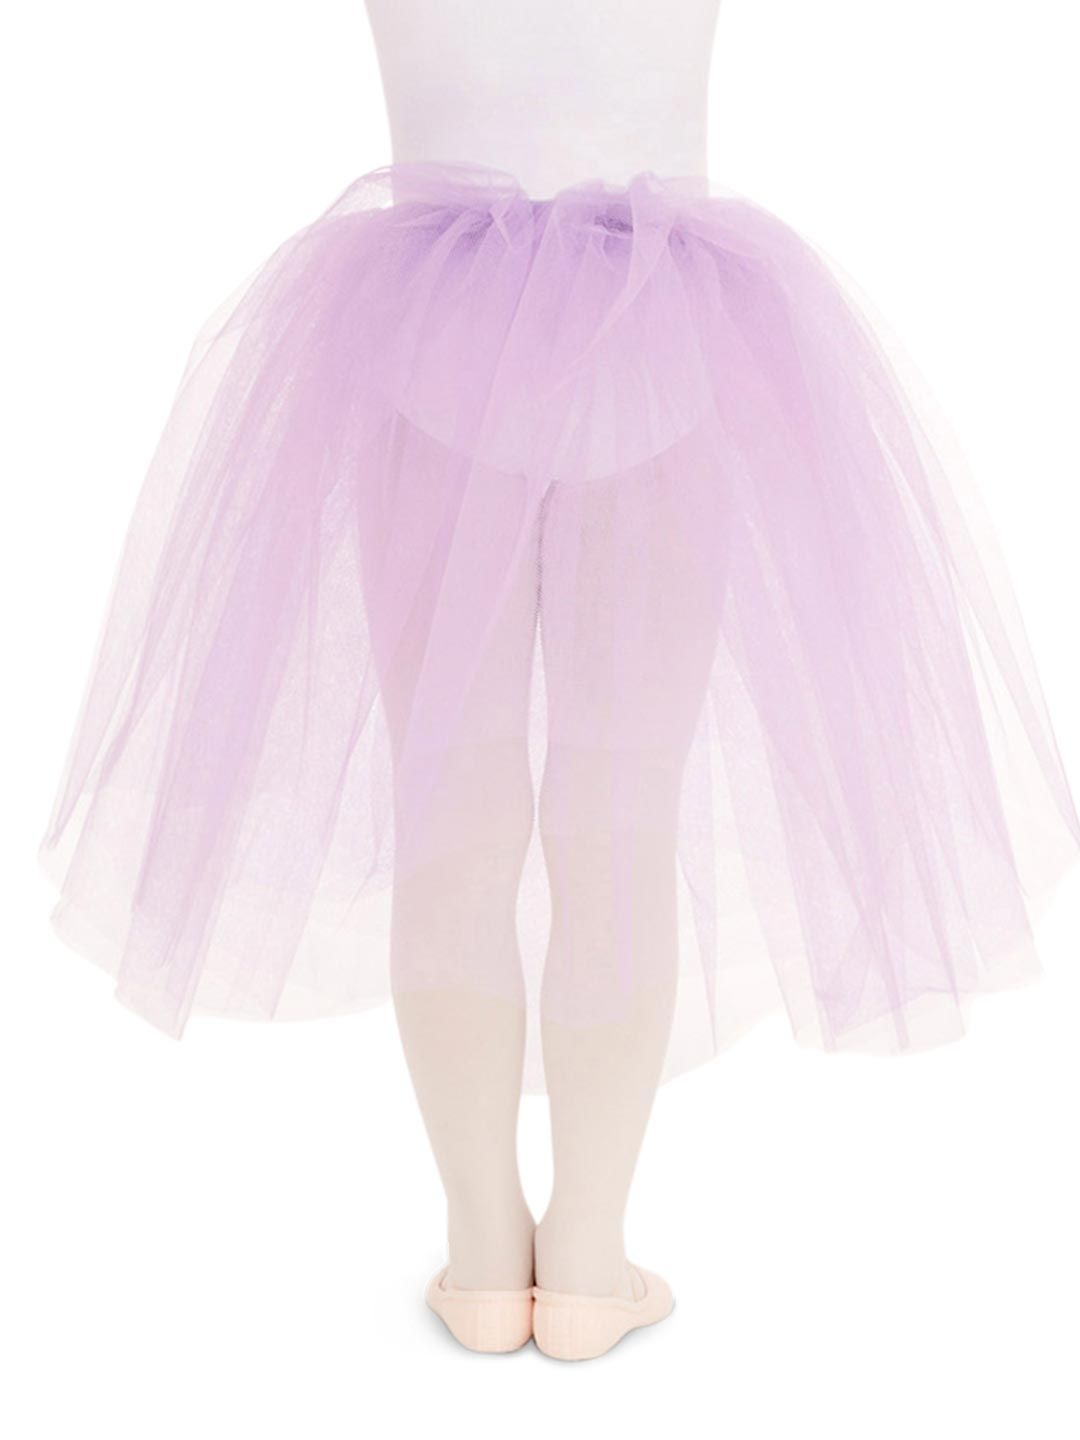 df38b0952de4 Children's Skirts, Capezio, Romantic Tutu Girls 9830C, $18.00, from  VEdance, the very best in ballroom and Latin dance shoes and dancewear.